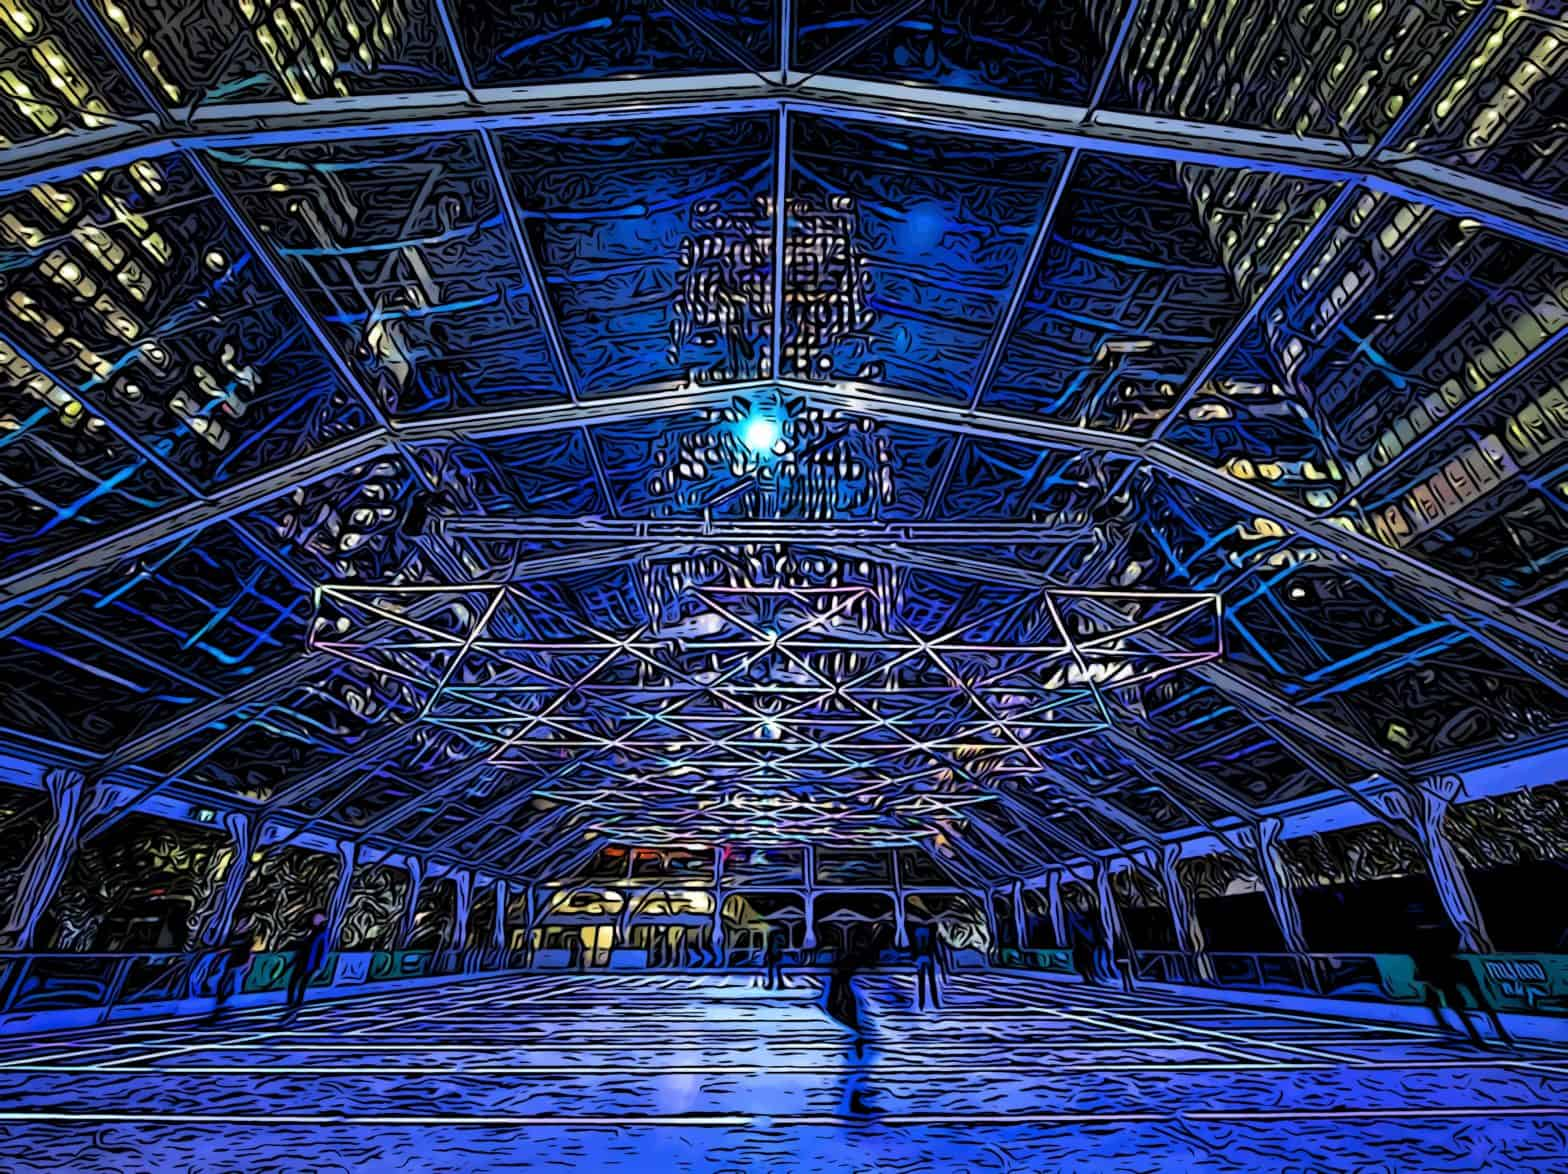 canary wharf ice rink with embedded LED lights and overhead display